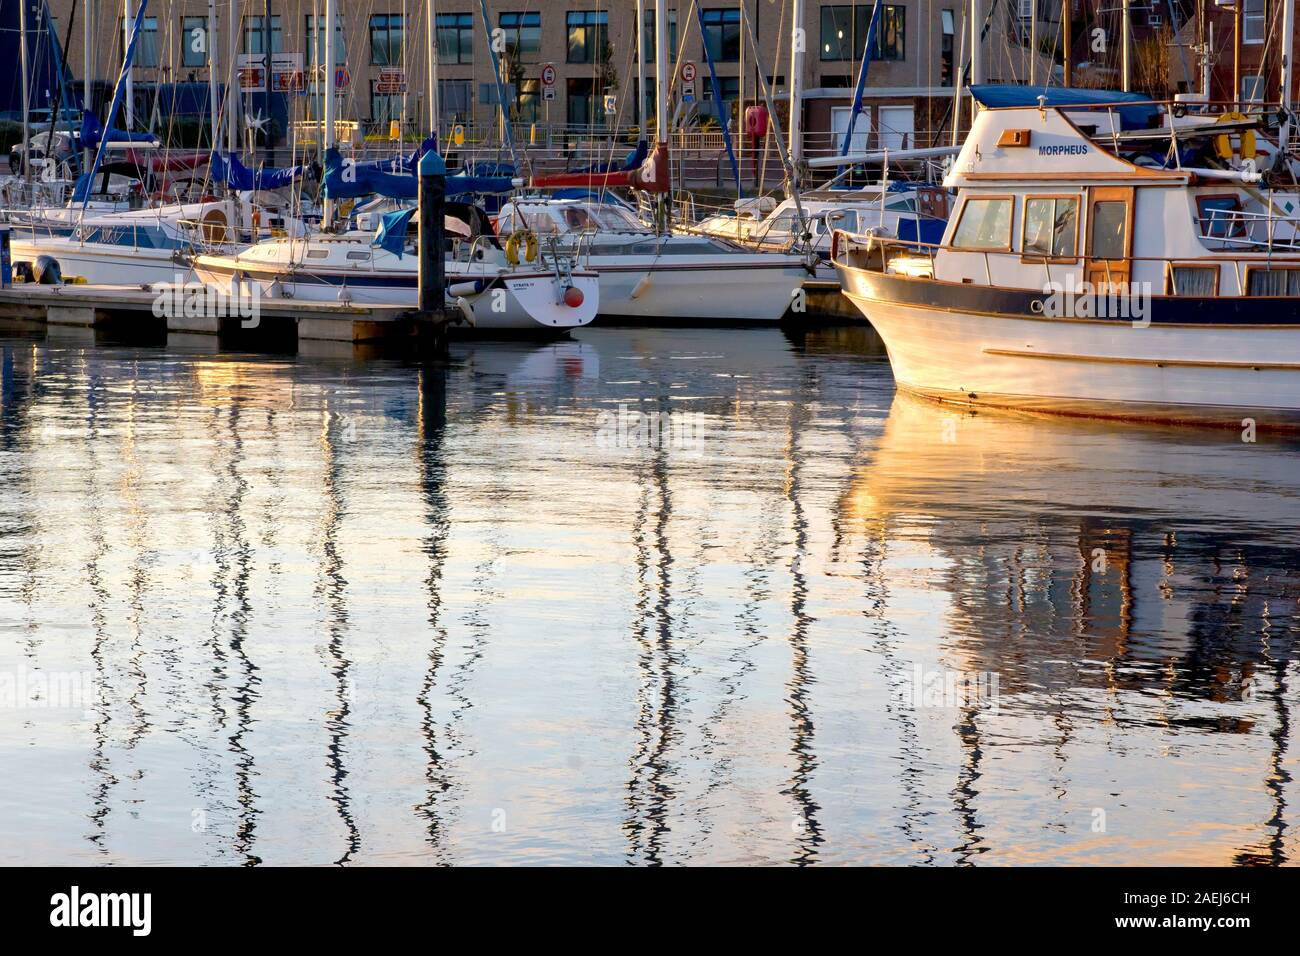 The marina at Arbroath harbour, filled with yachts and pleasure craft, lit by the warm directional light of a low sun at the end of the day. Stock Photo